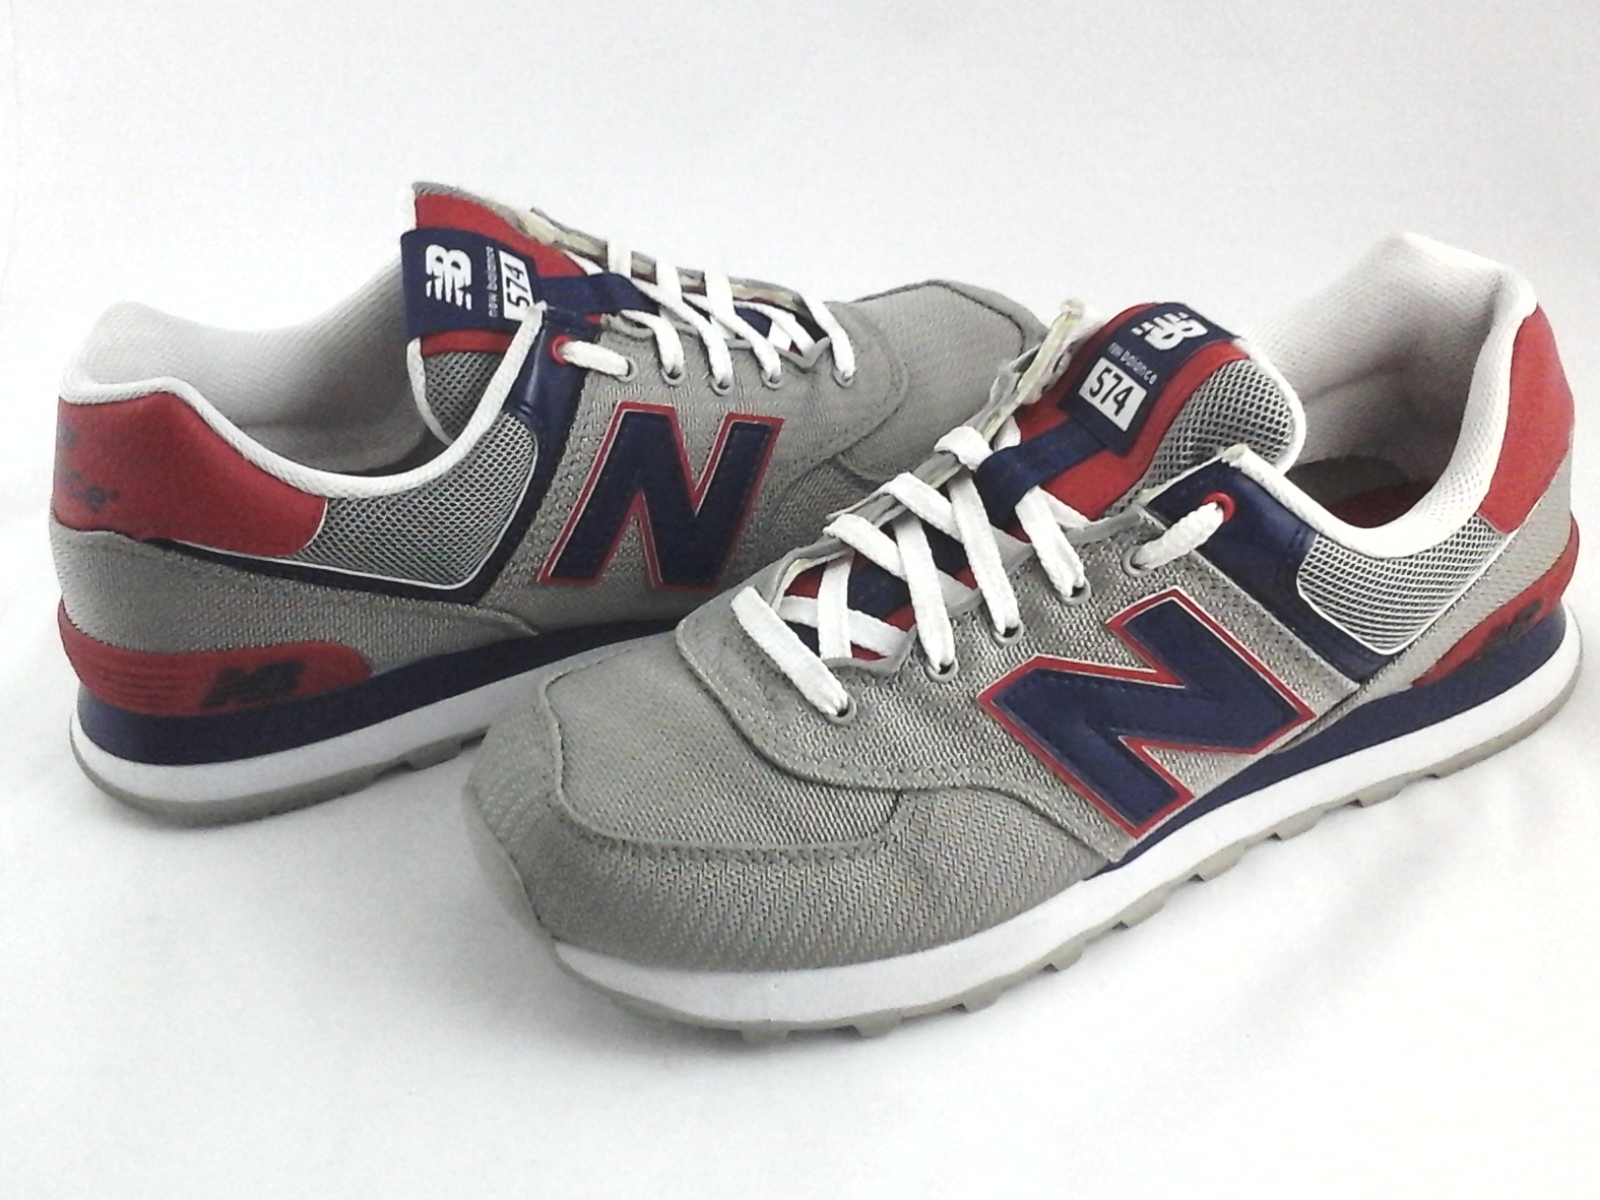 Details about NEW BALANCE Shoes 574 Encap Silver Blue Red Running Sneakers  Men s US 8.5 EU 42 7ac9ca77a740b